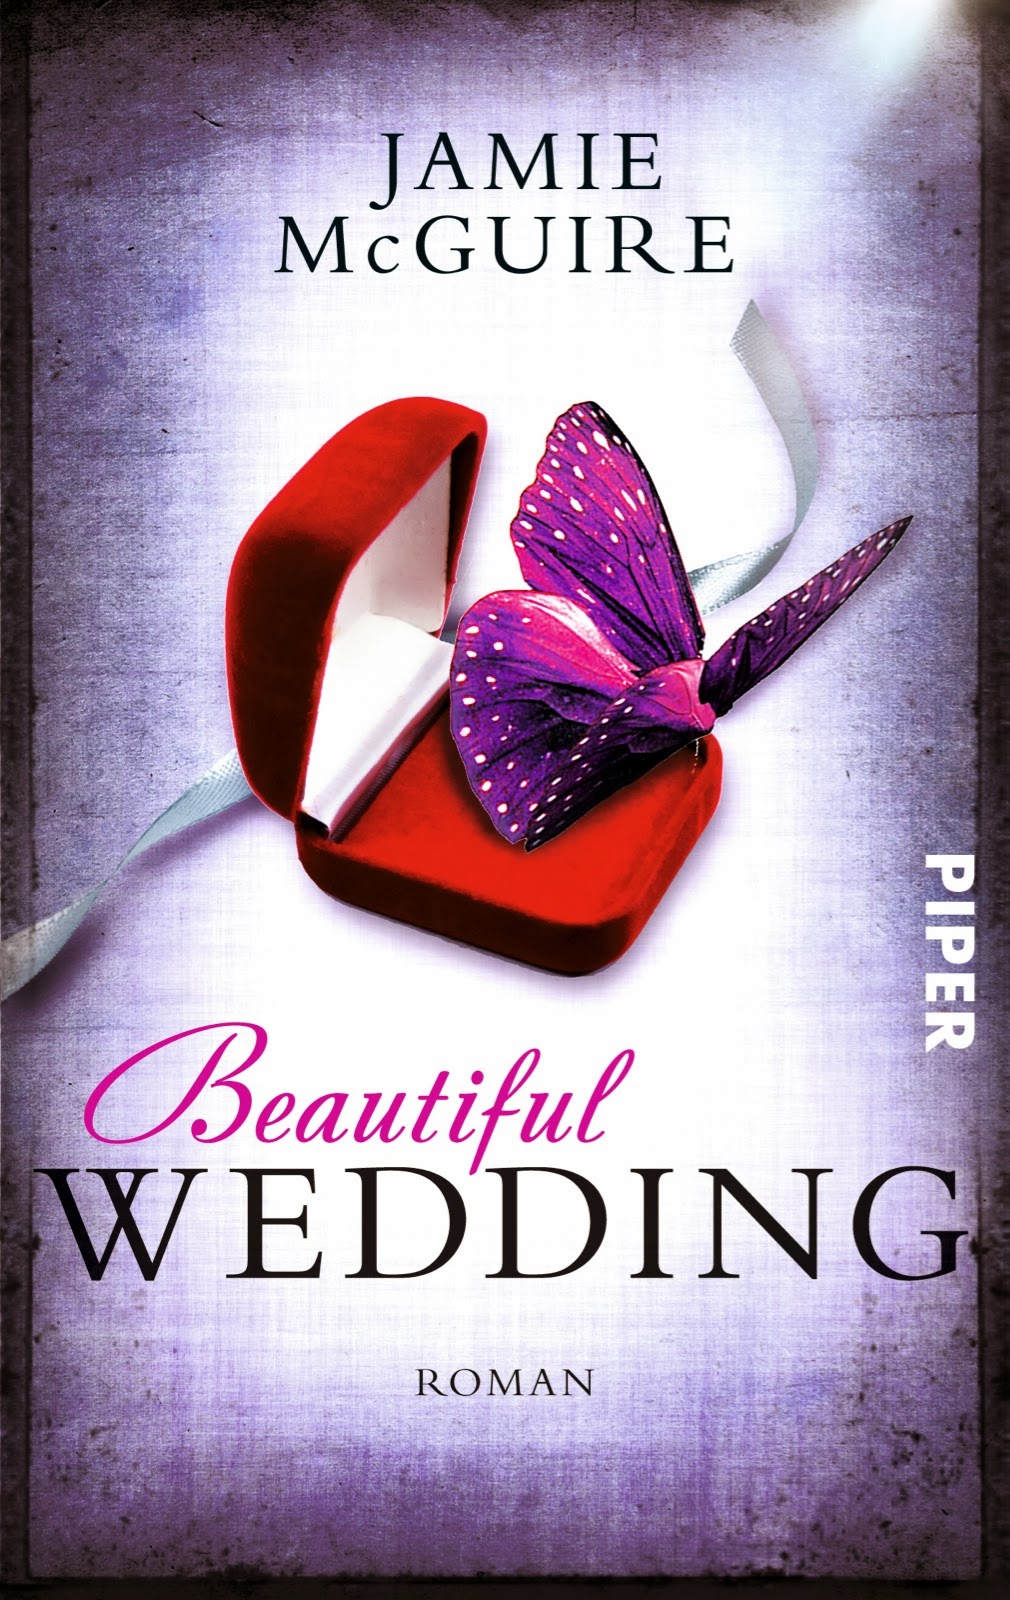 http://www.amazon.de/Beautiful-Wedding-Beautiful-Serie-Jamie-McGuire/dp/3492305806/ref=sr_1_1?s=books&ie=UTF8&qid=1394825626&sr=1-1&keywords=beautiful+wedding